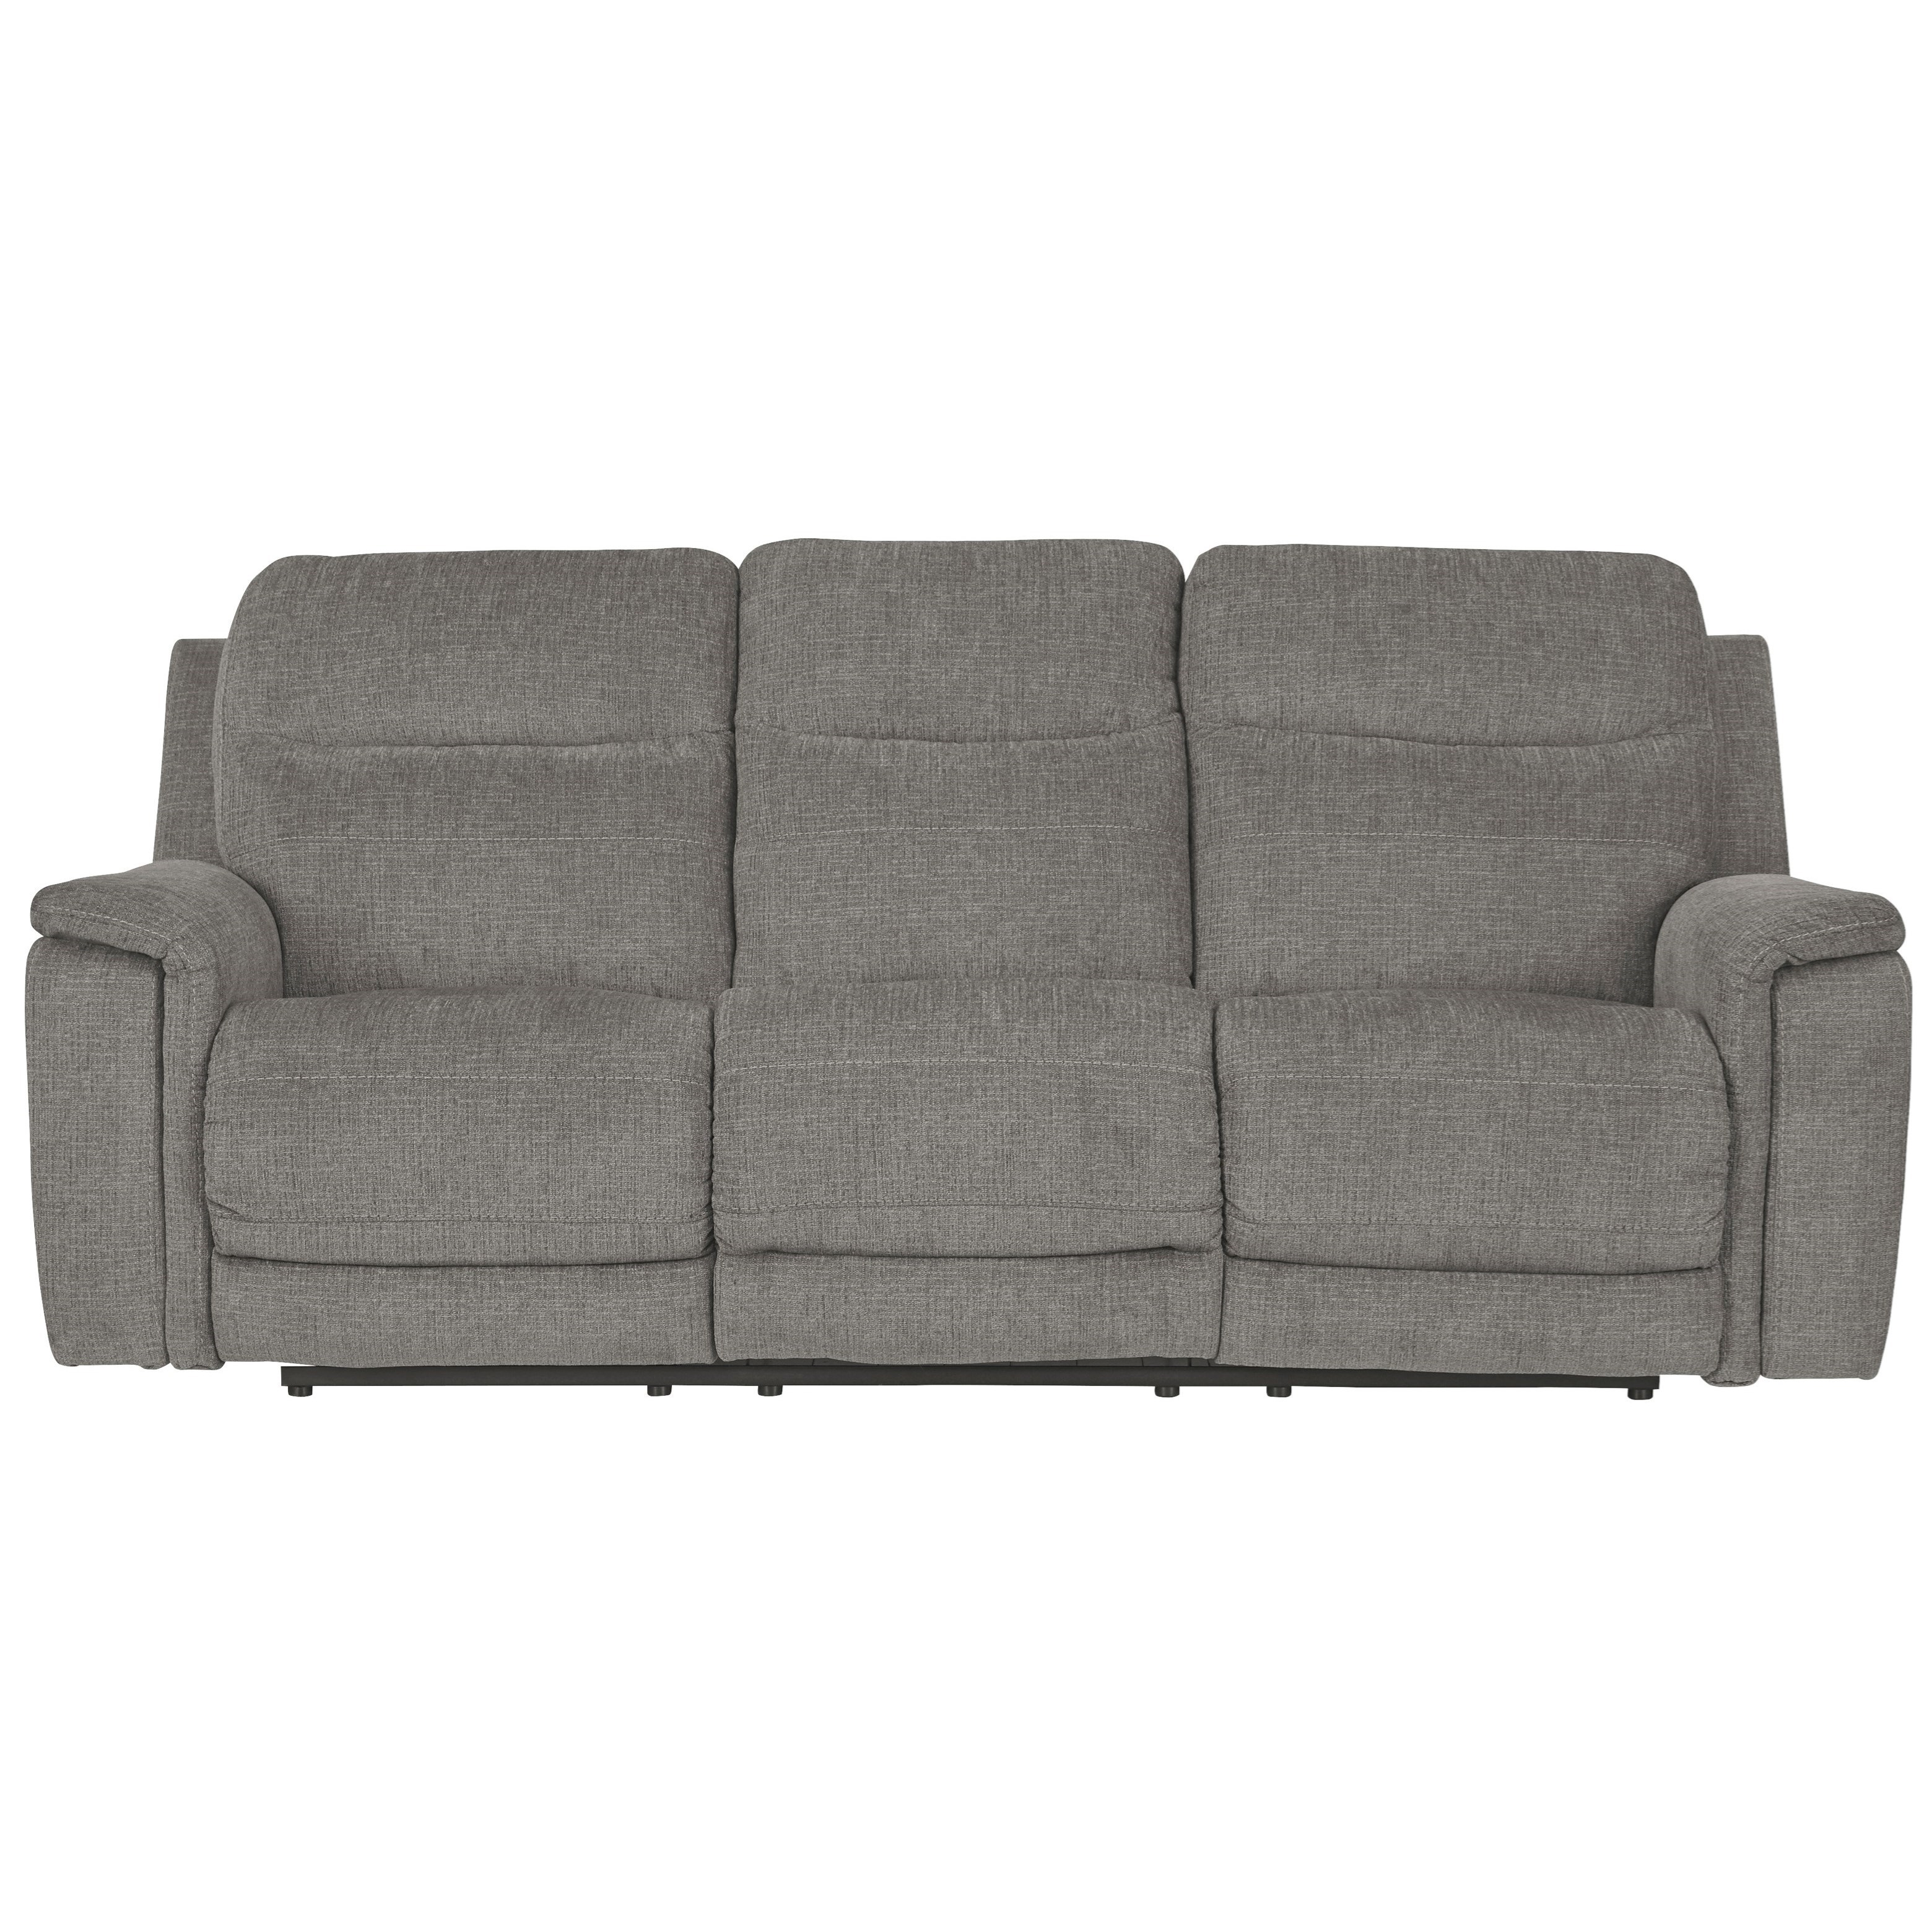 Mouttrie Power Reclining Sofa w/ Adjustable Headrests by Signature Design by Ashley at Factory Direct Furniture